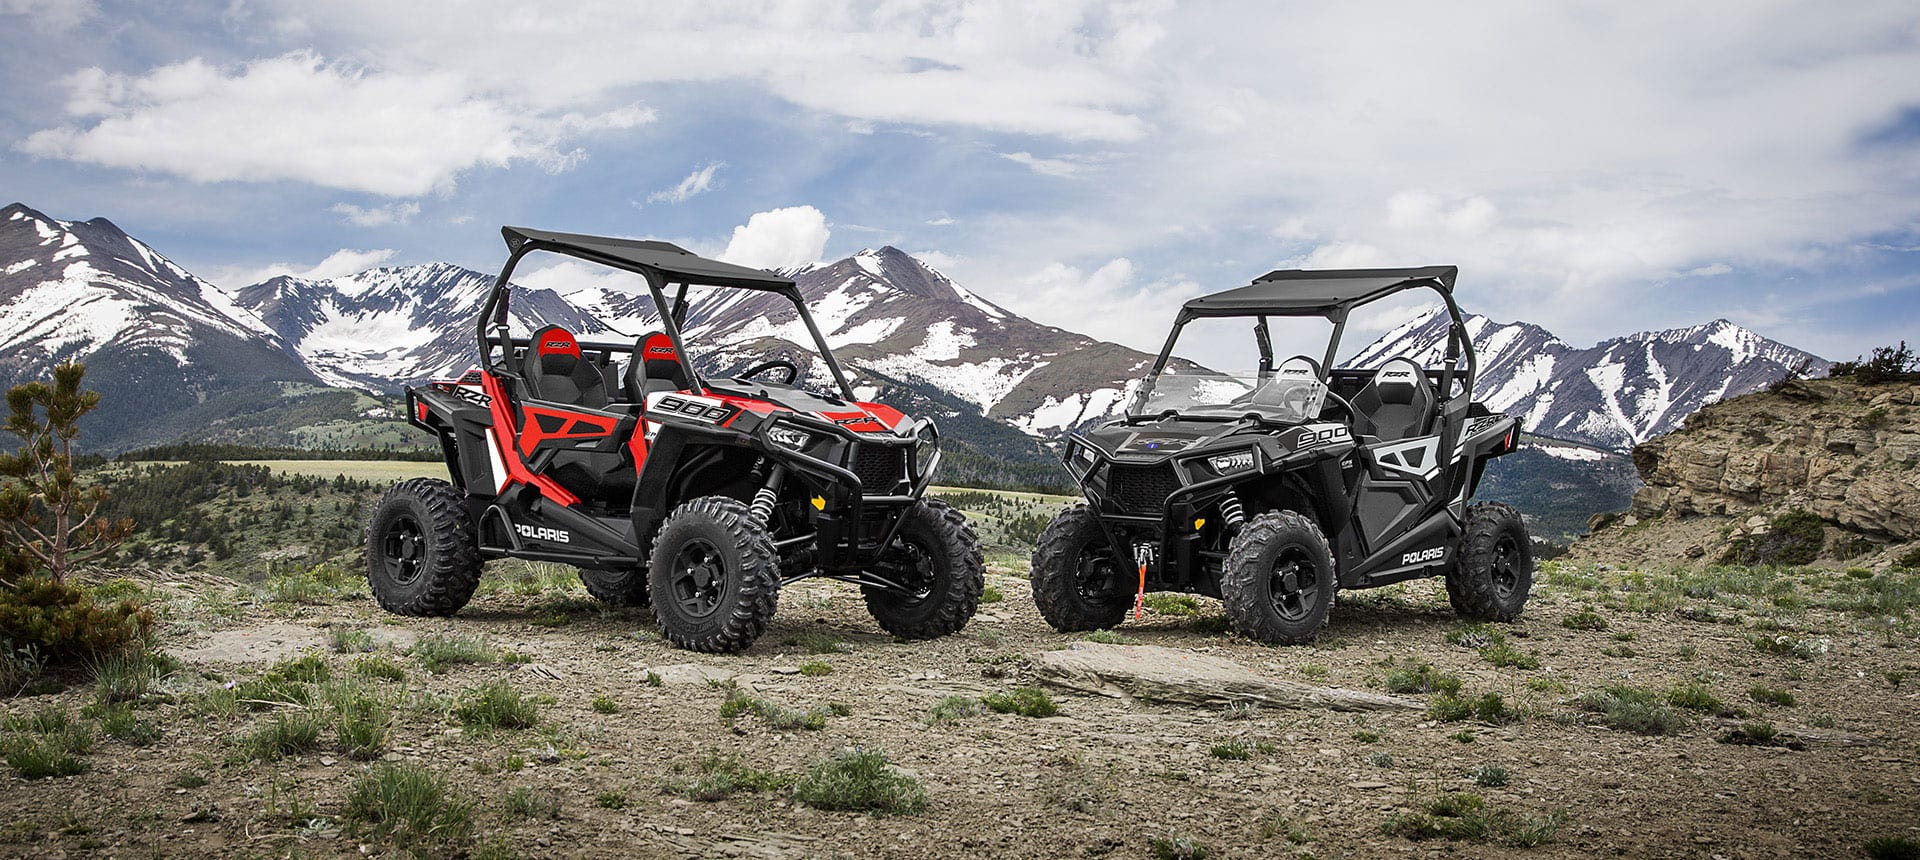 RZR 900 OFFROAD VEHICLE